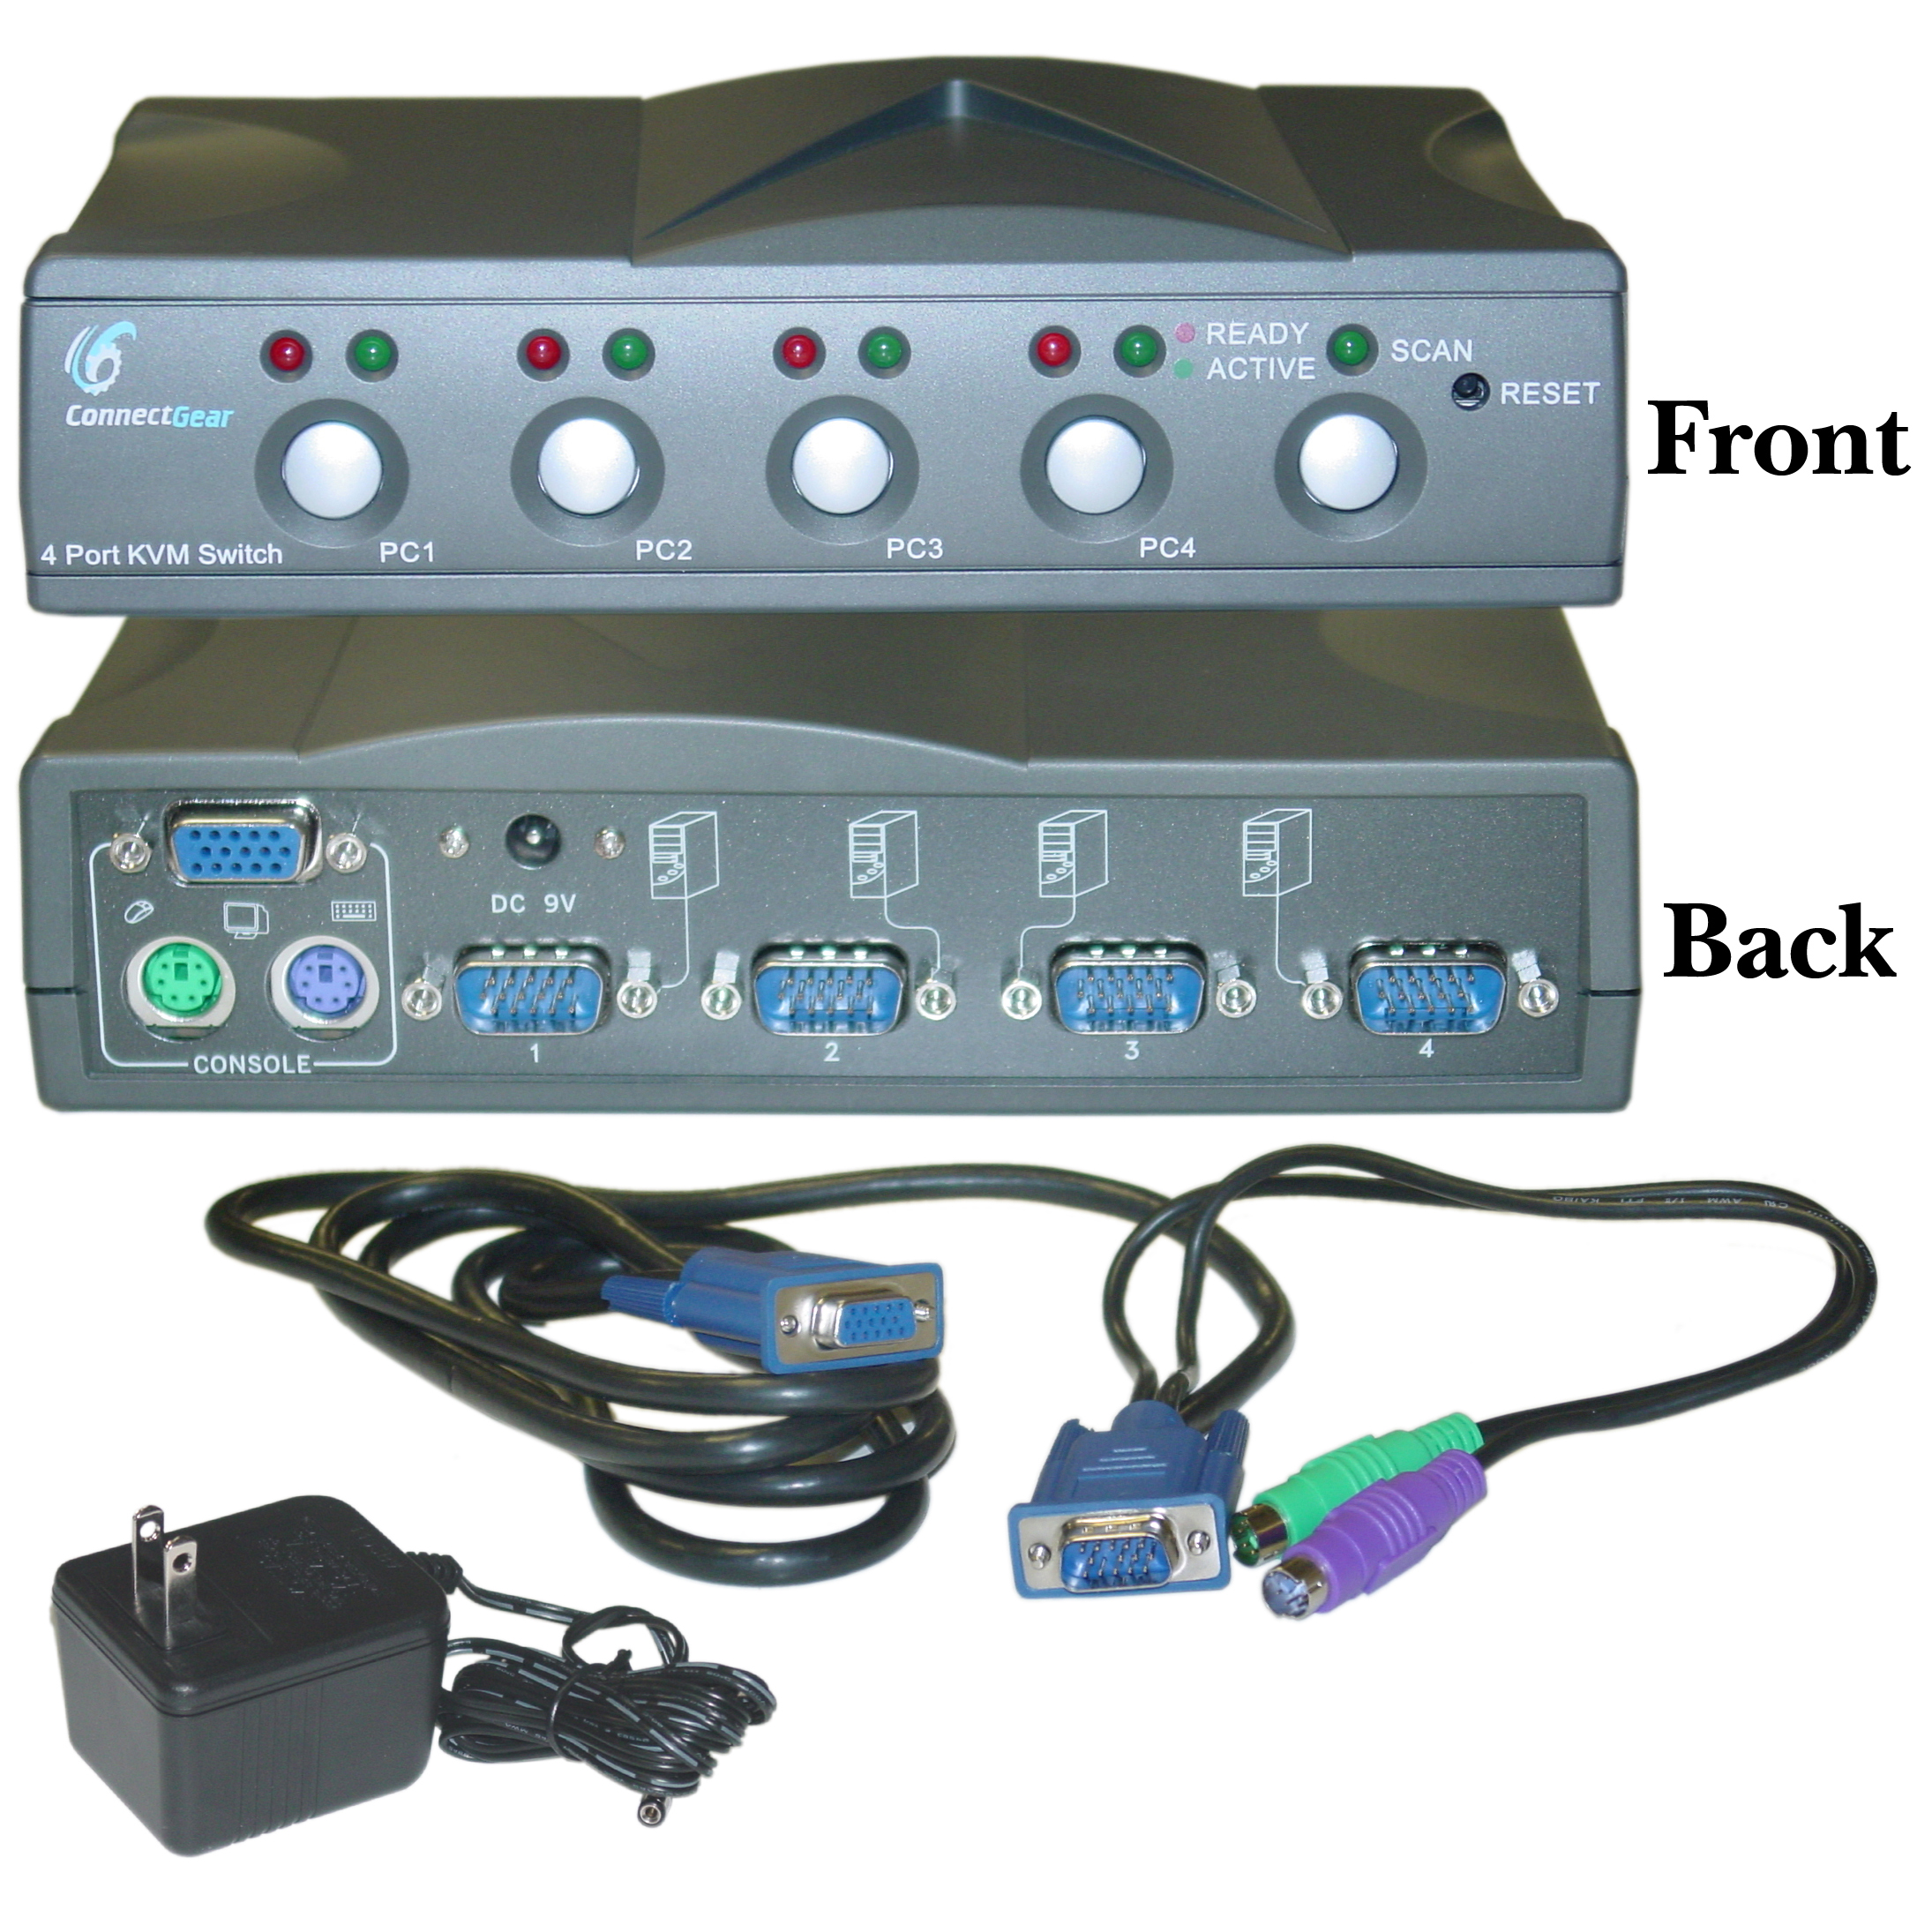 4 Port Kvm Switch With Cables Vga And Ps 2 Way For Sale Hd15